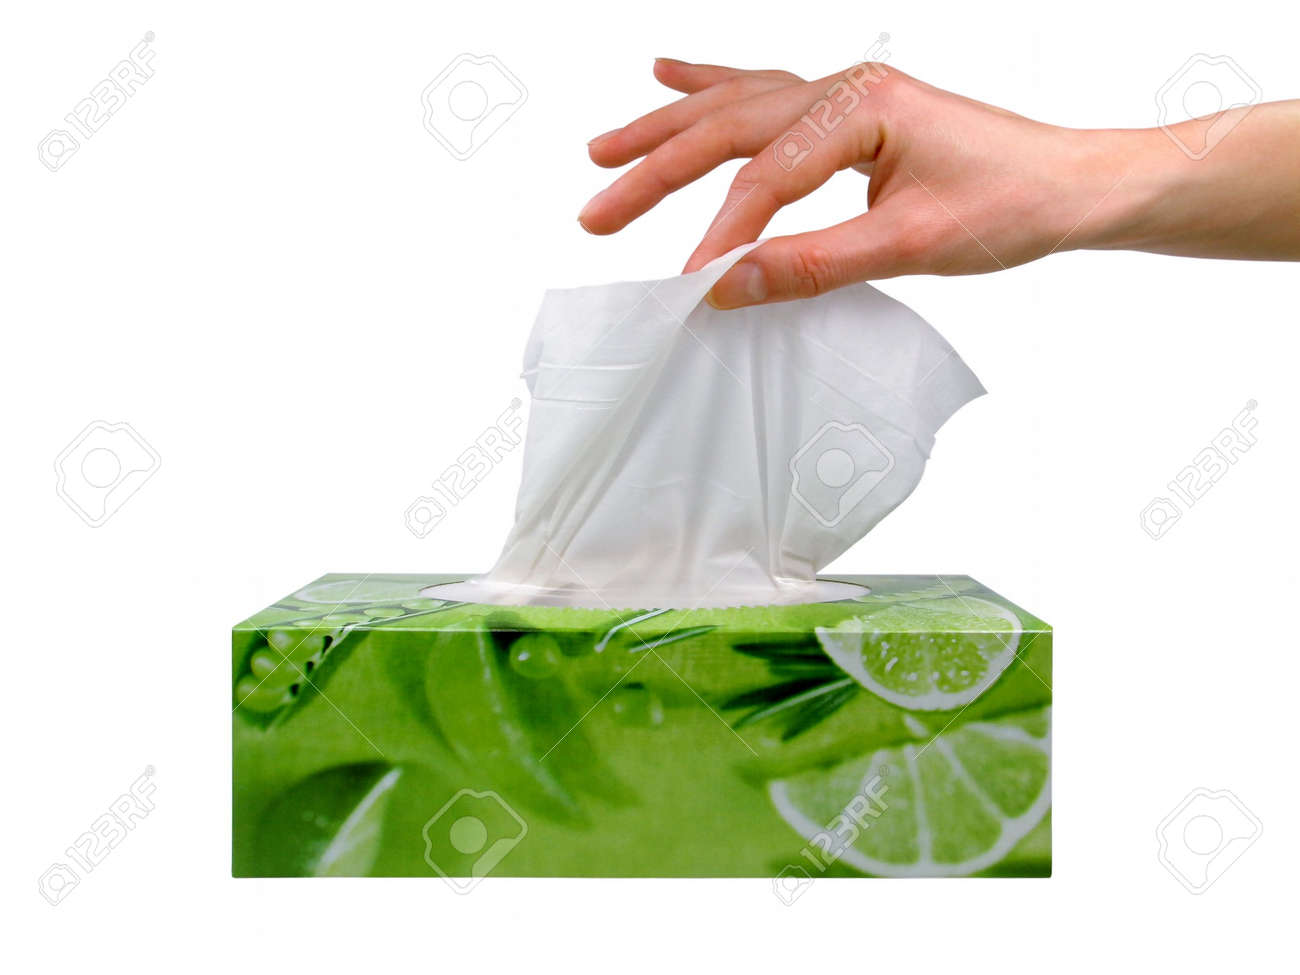 delicate woman s hand pulls a tissue from a green tissue box stock